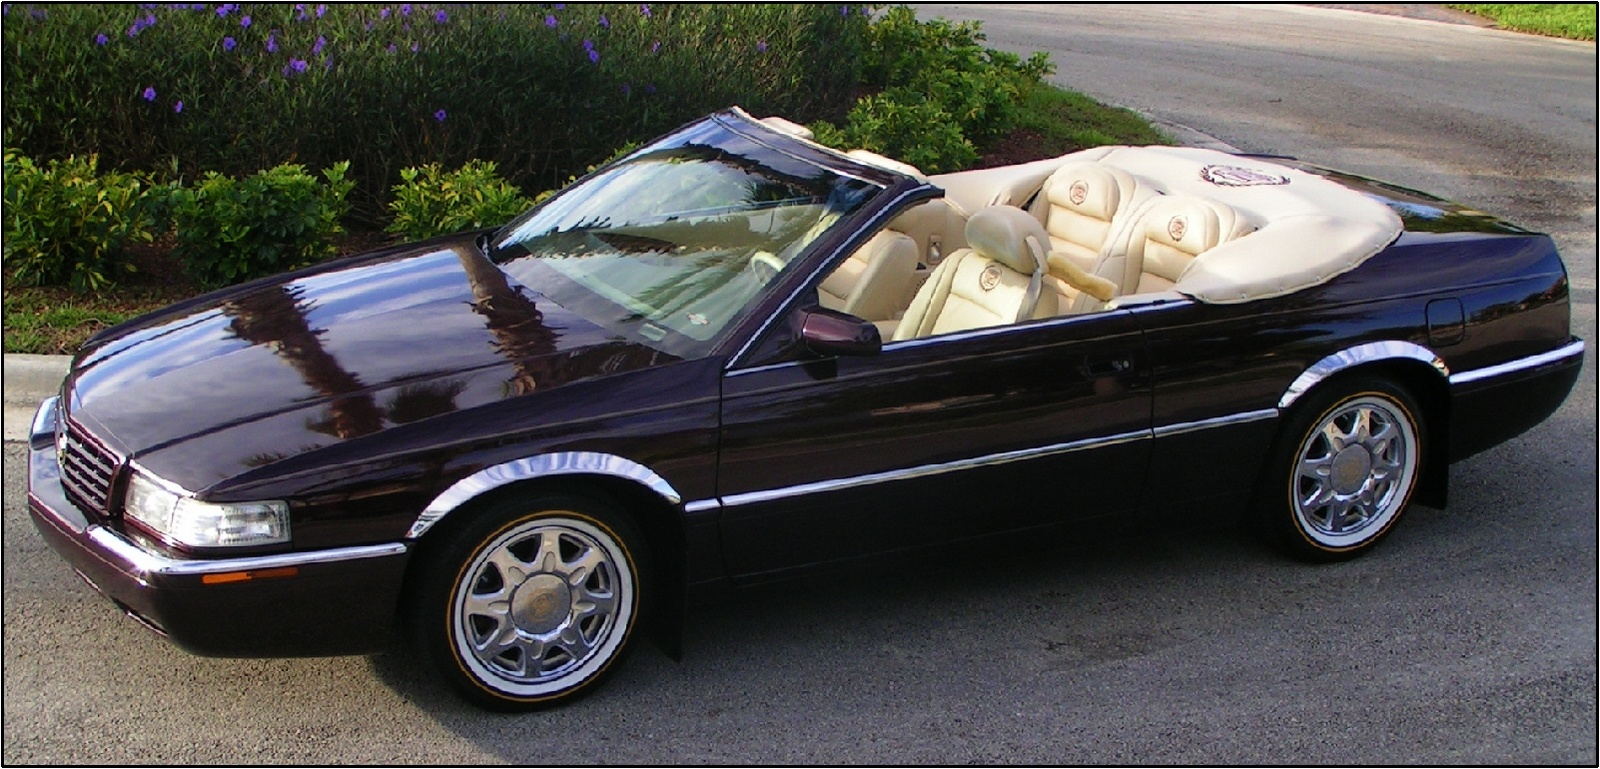 hight resolution of cadillac eldorado 1994 photo 1